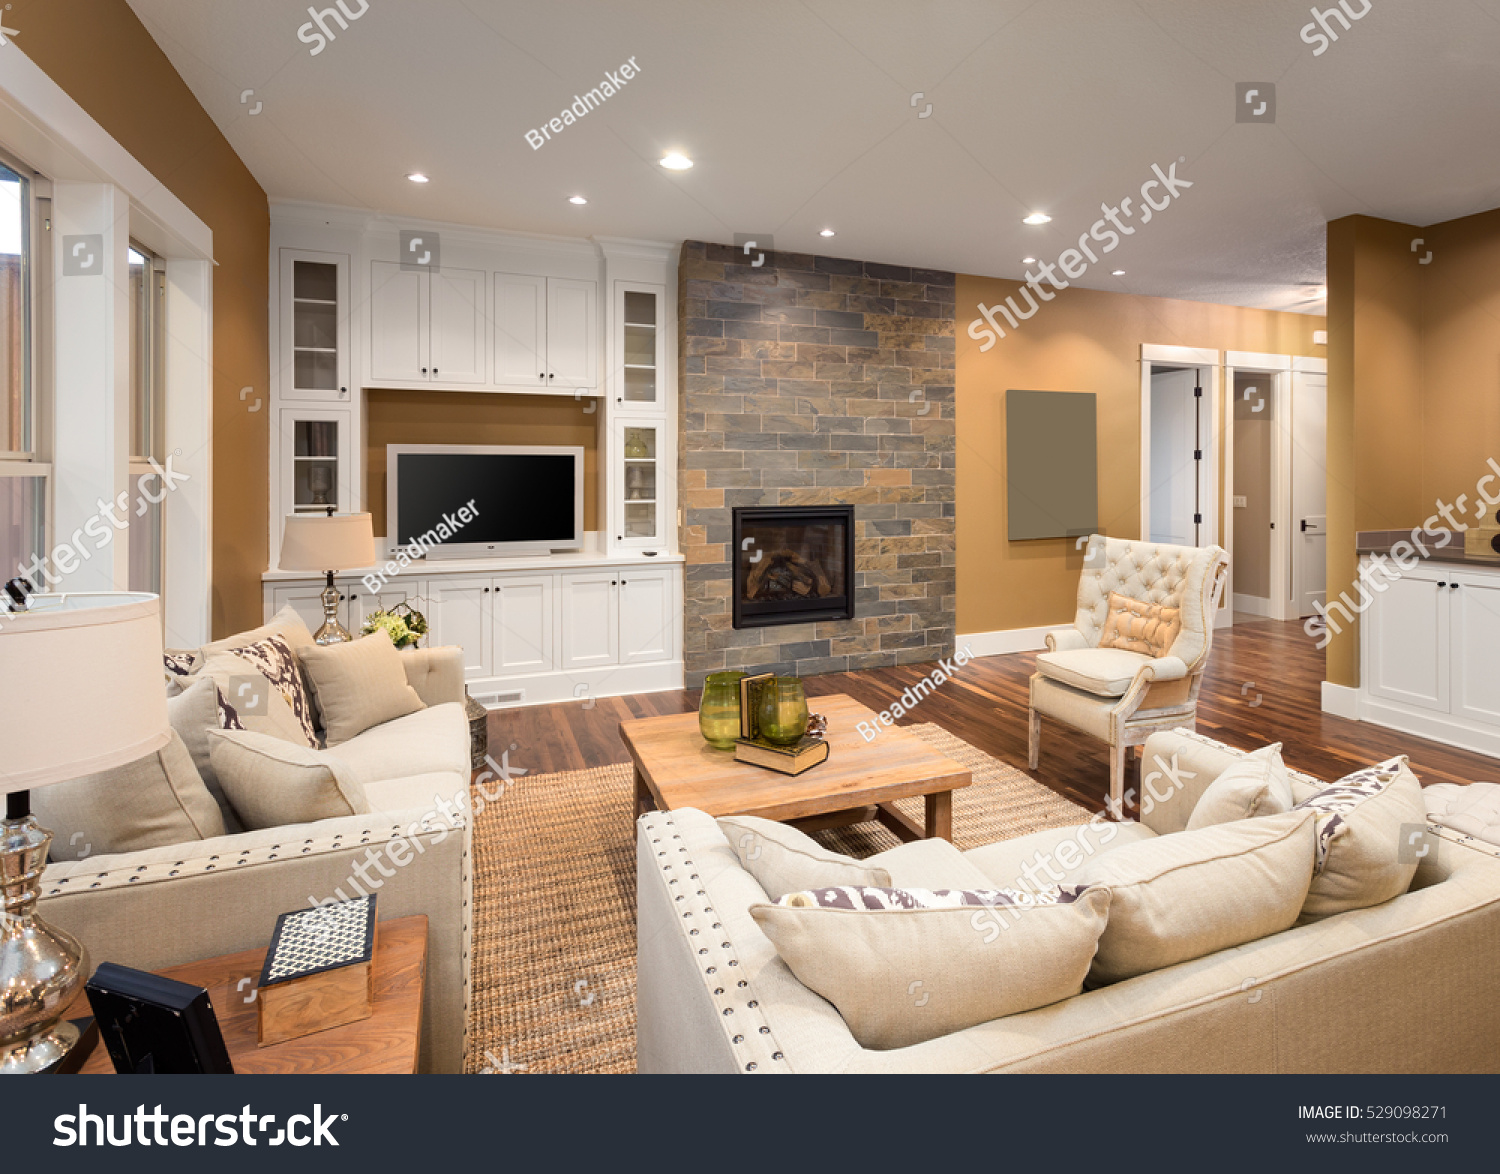 Beautiful Furnished Living Room Fireplace Television Stock Photo ...